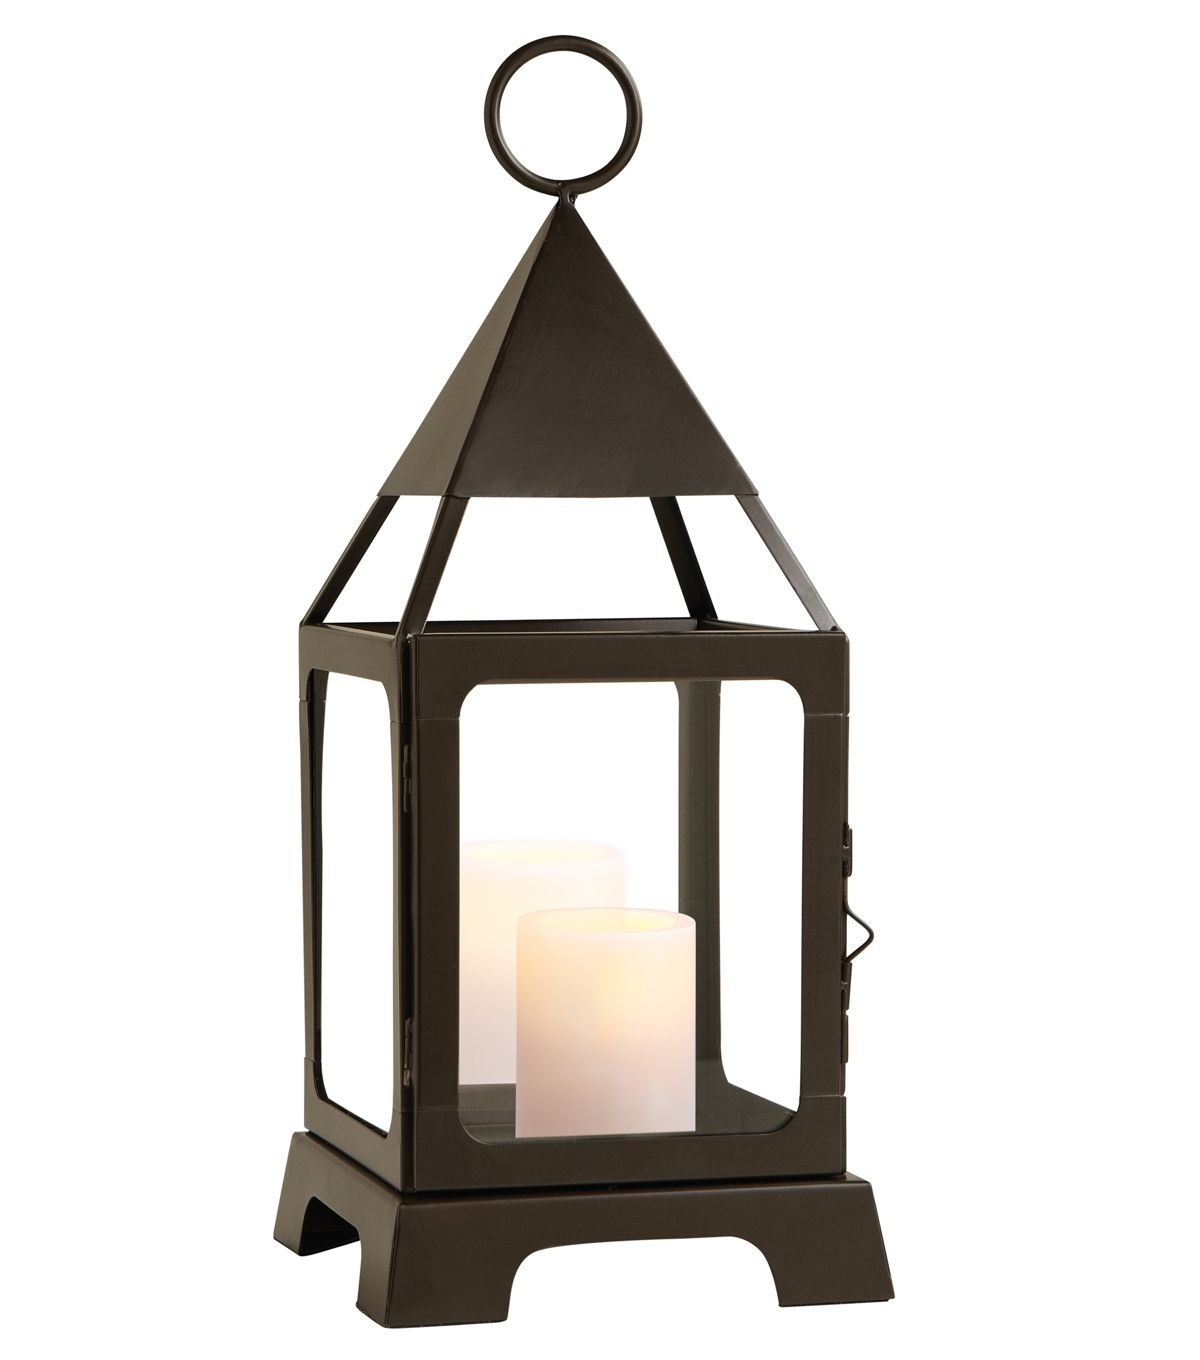 Well Known Medium Lantern Candle Holder Ledmedium Lantern Candle Holder Led With Joanns Outdoor Lanterns (View 18 of 20)